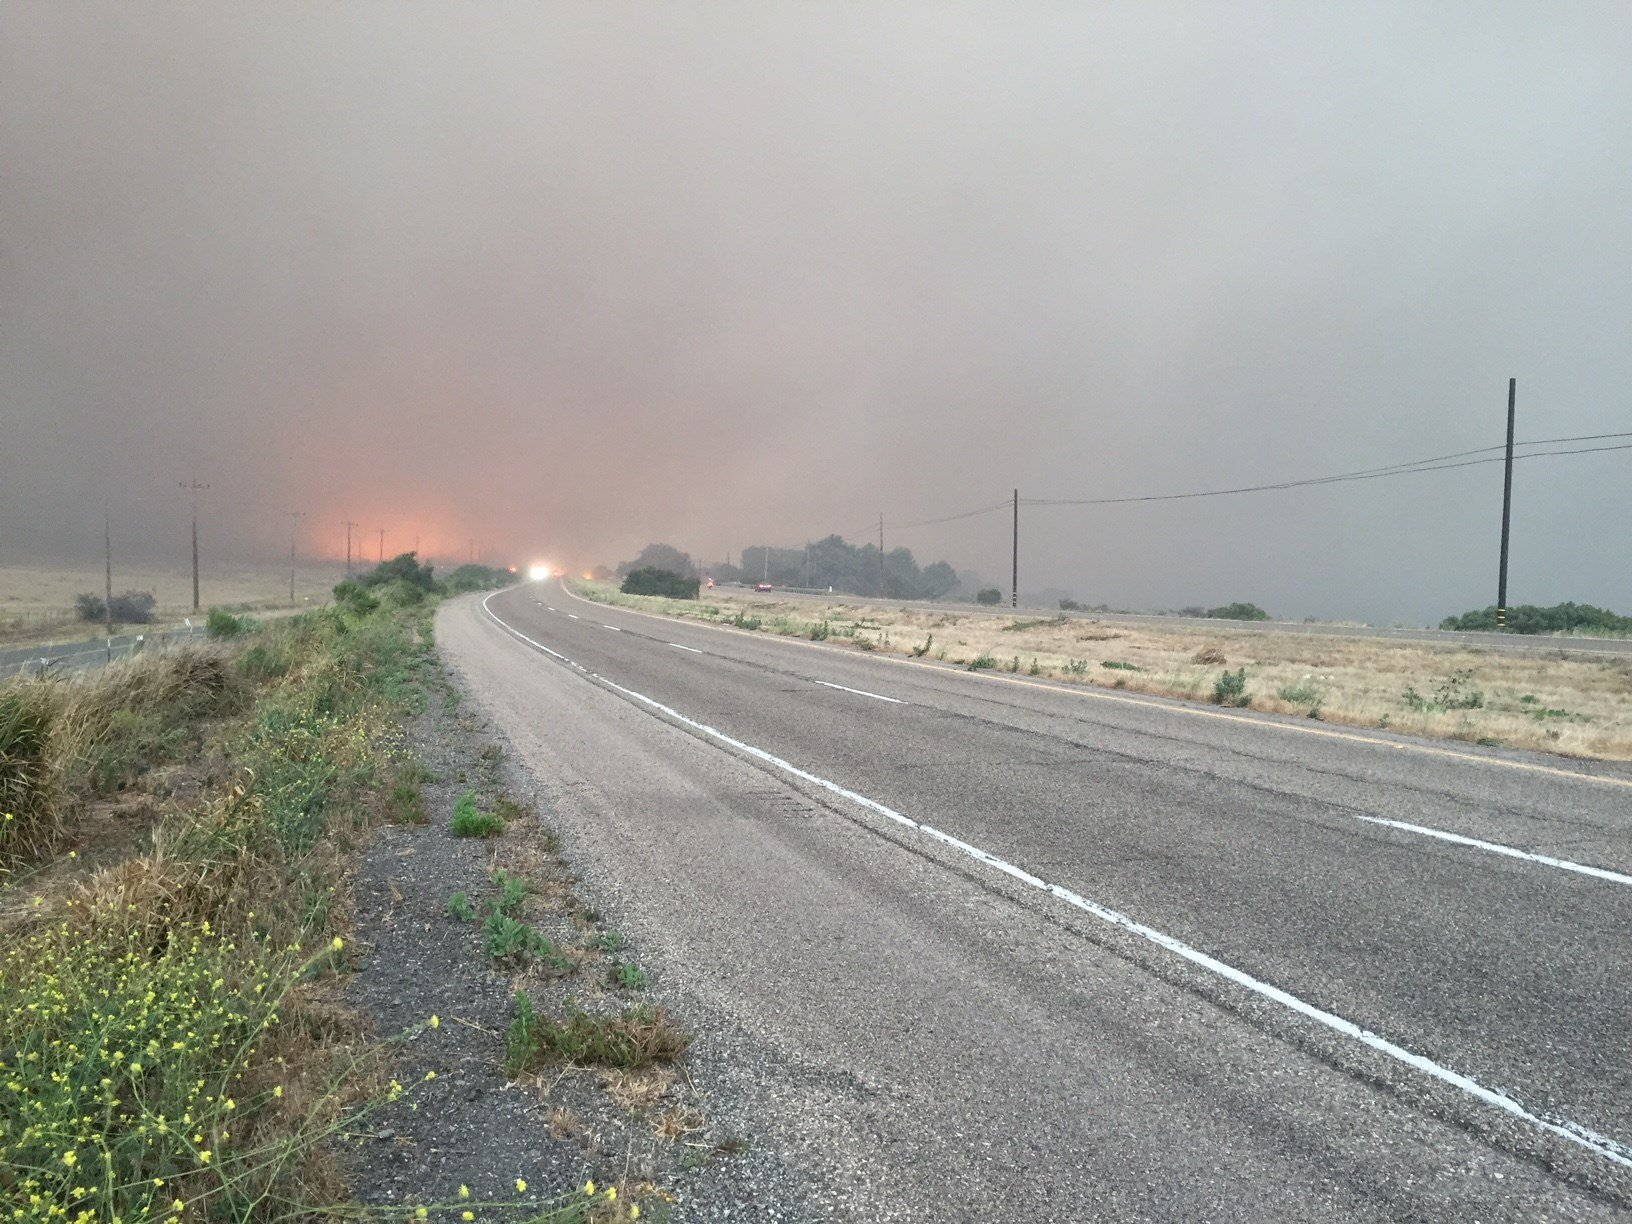 Wildfires in Californa, Arizona and New Mexico Burn Thousands of Acres